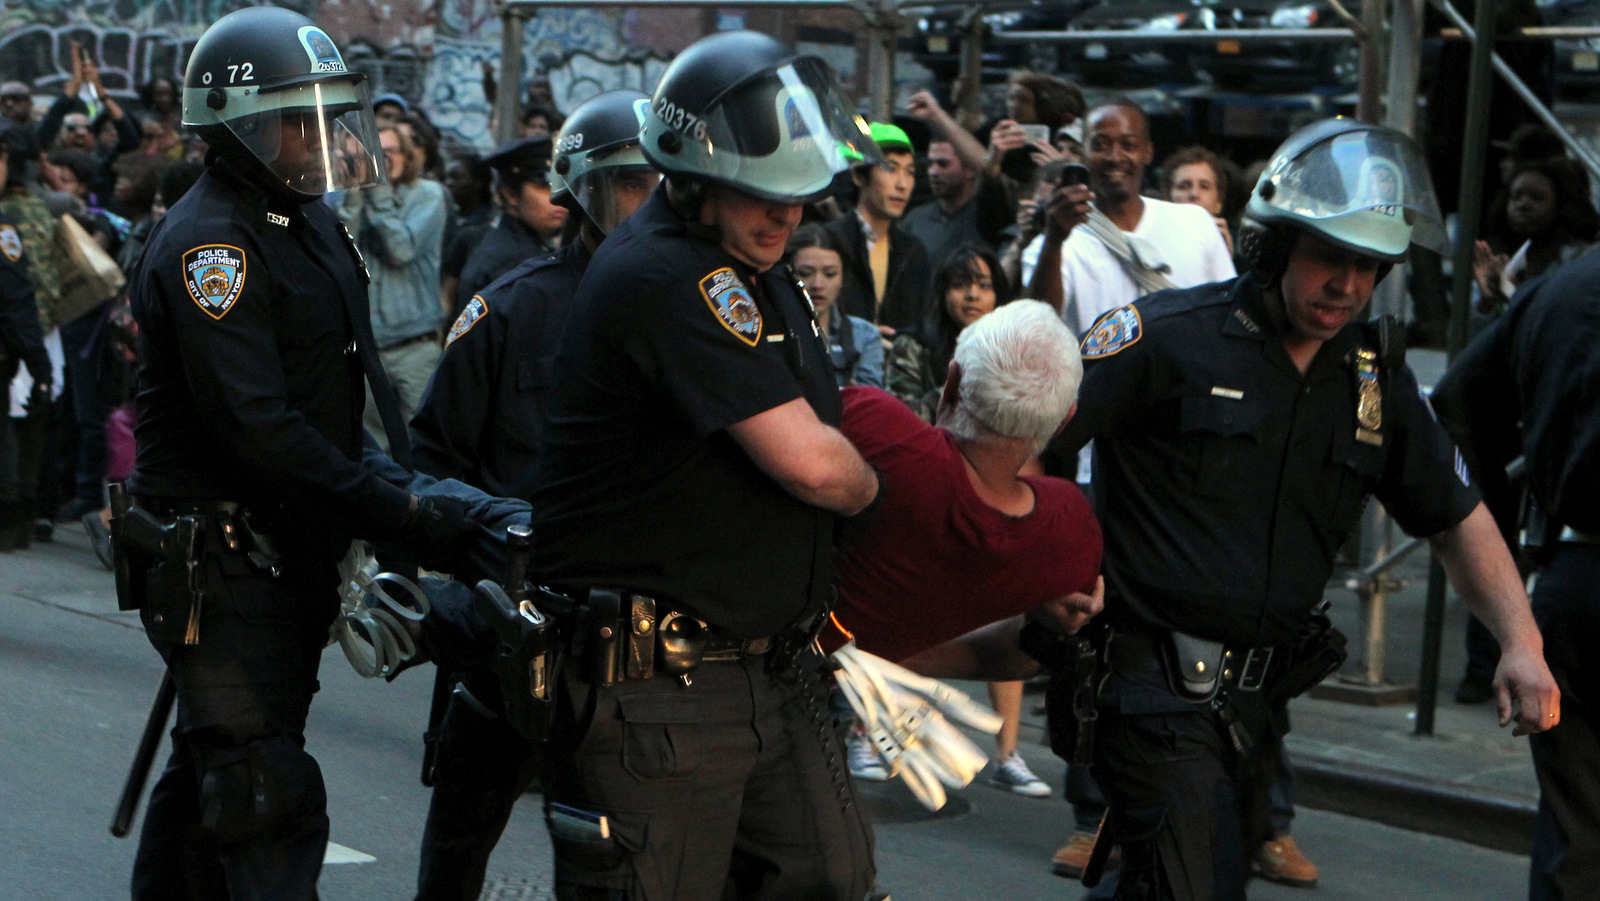 The NYPD arrest an eledery man protesting the death of Baltimore, Maryland Police victim Freddie Gray in a show of solidarity in the Union Square section of New York City on April 29, 2015 in New York City. (Credit: RTNJennings/MediaPunch/IPX)